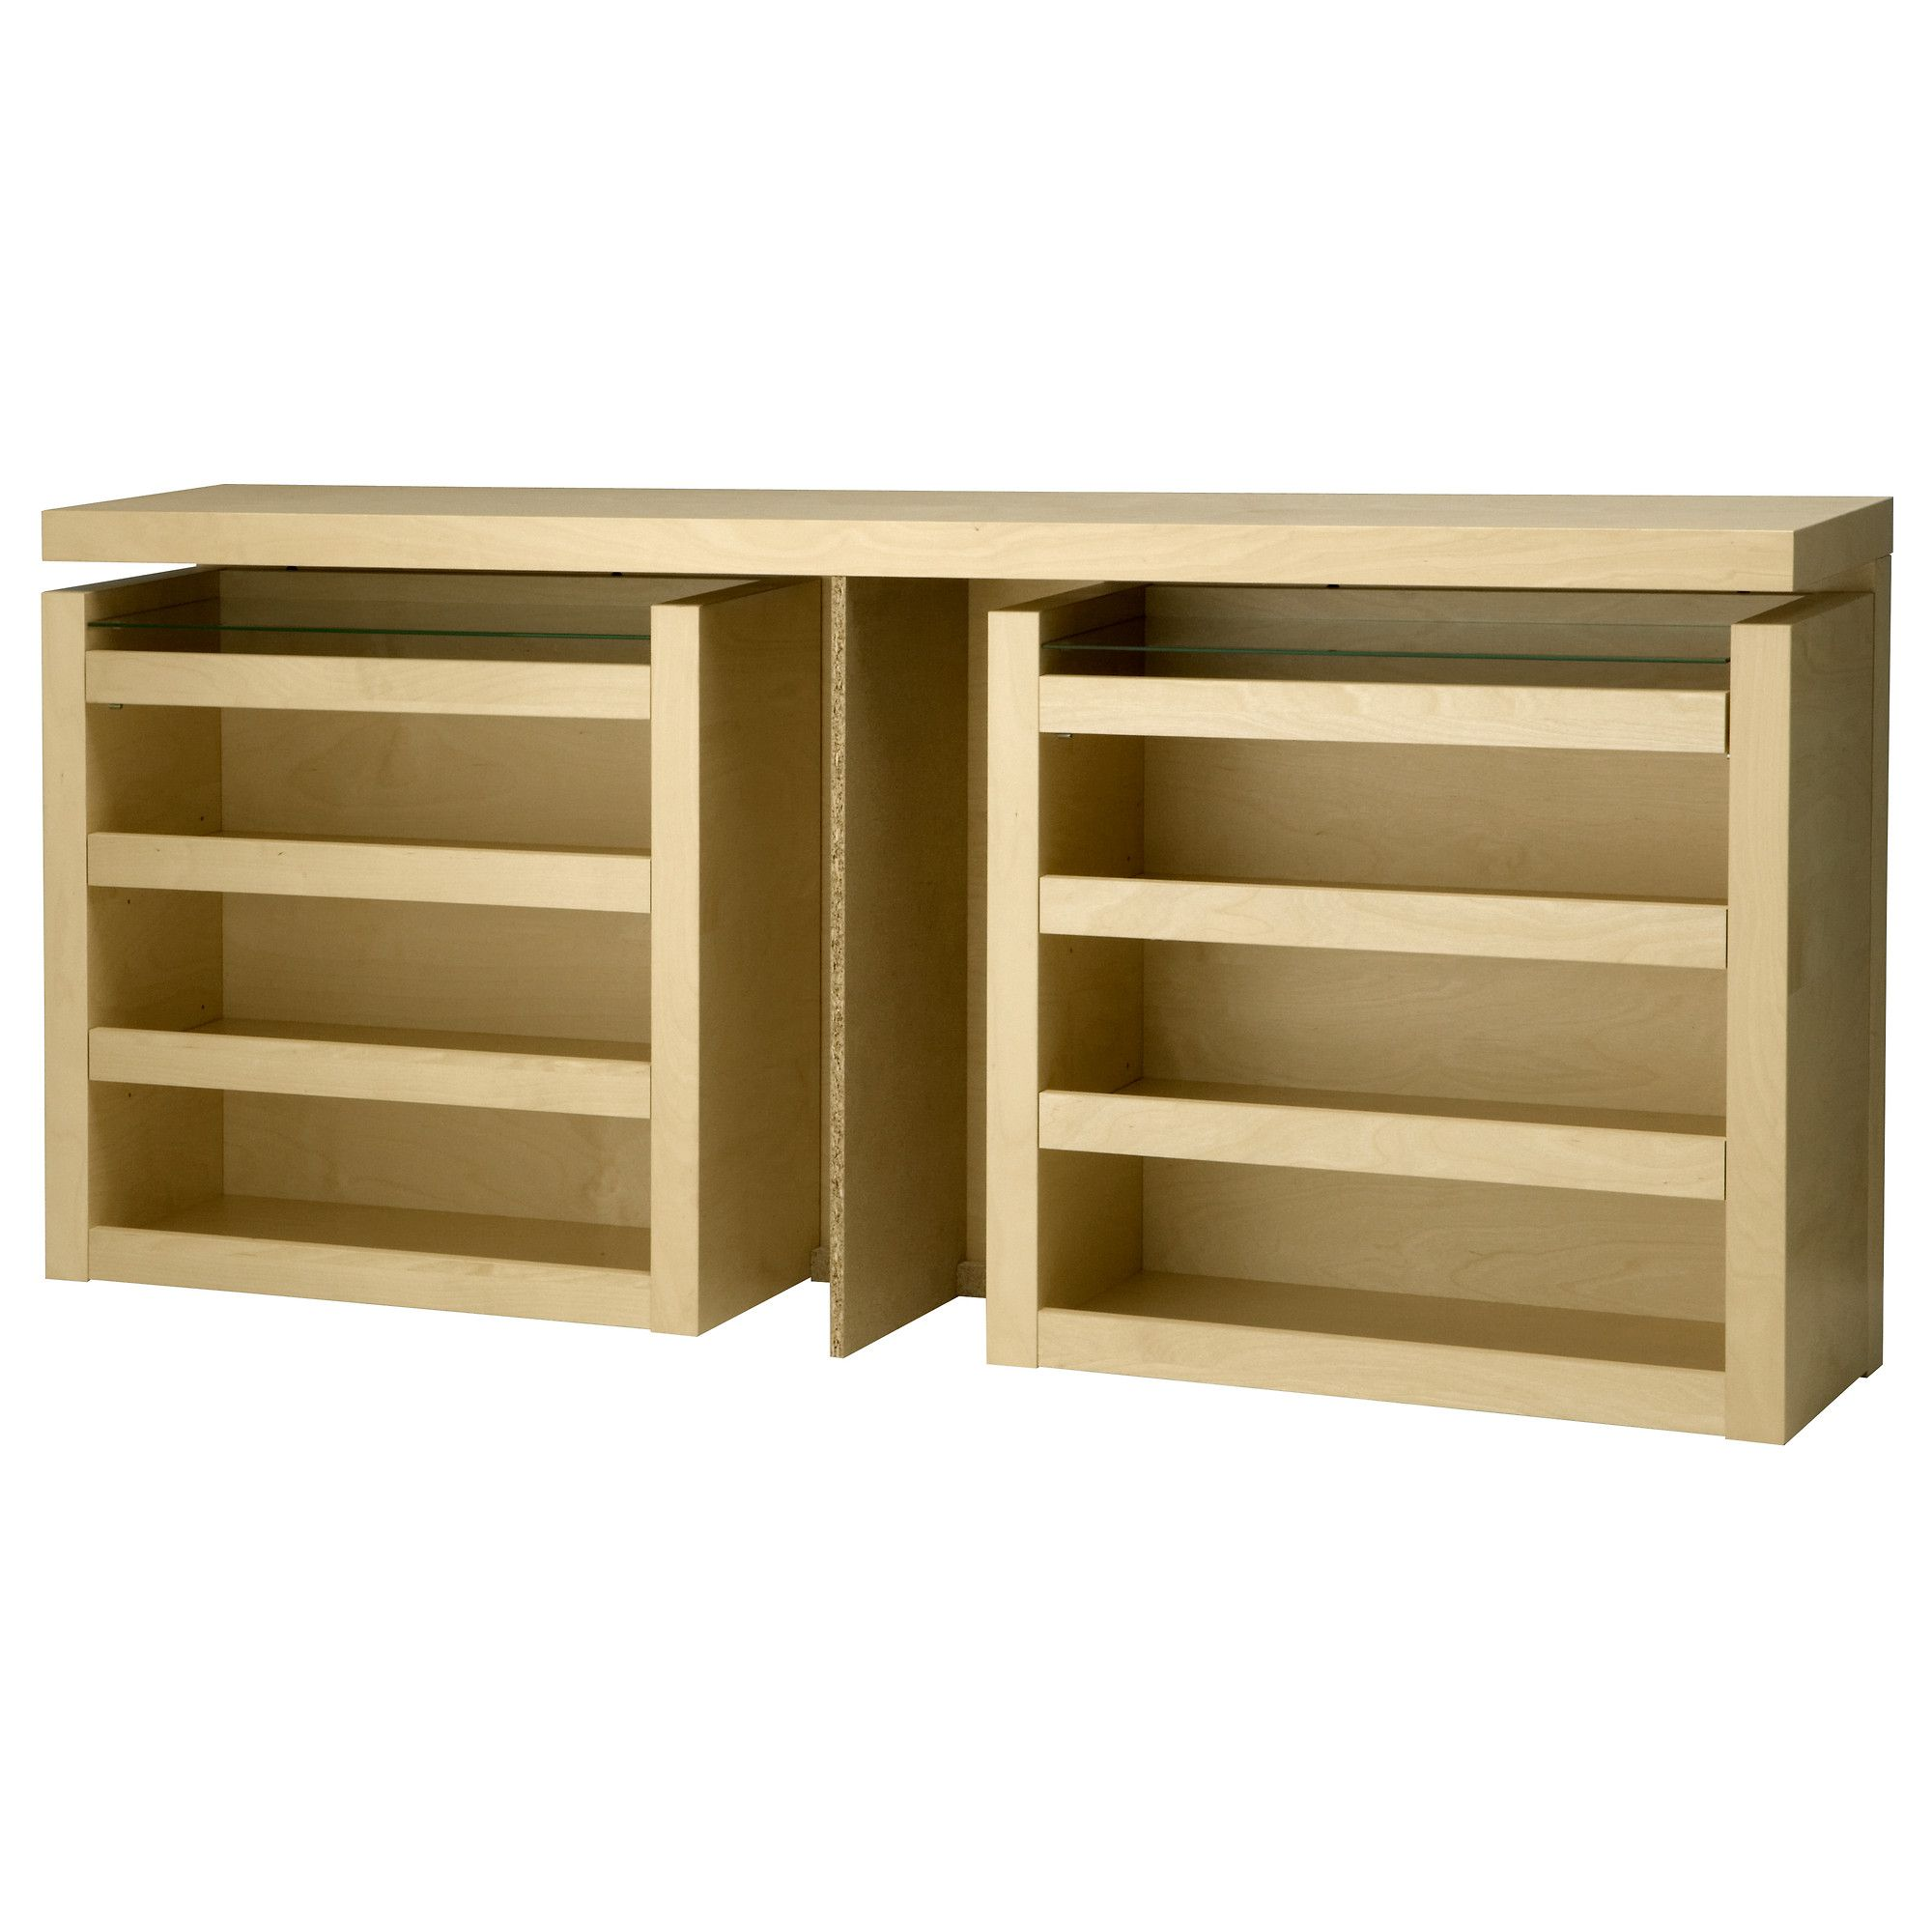 Details About White 3 Piece Storage Drawers Twin Bed Box: MALM 3-piece Headboard/bed Shelf Set